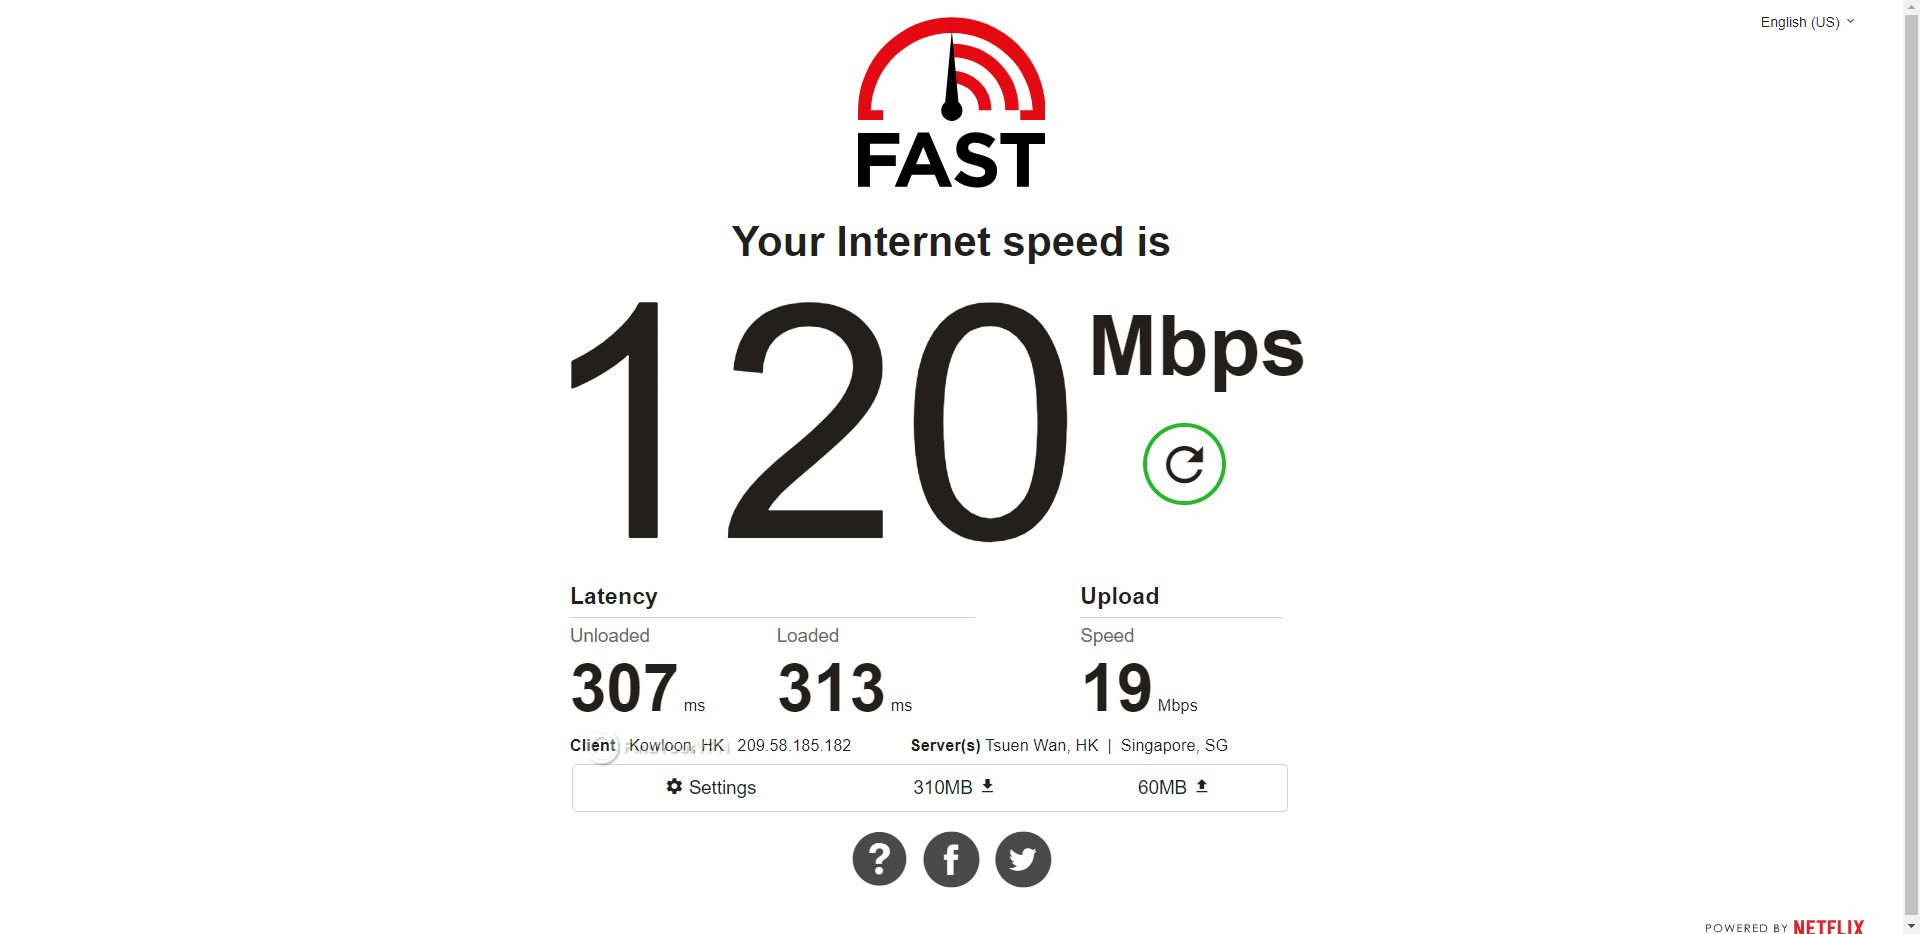 Mullvad Hong Kong Speed Test Results